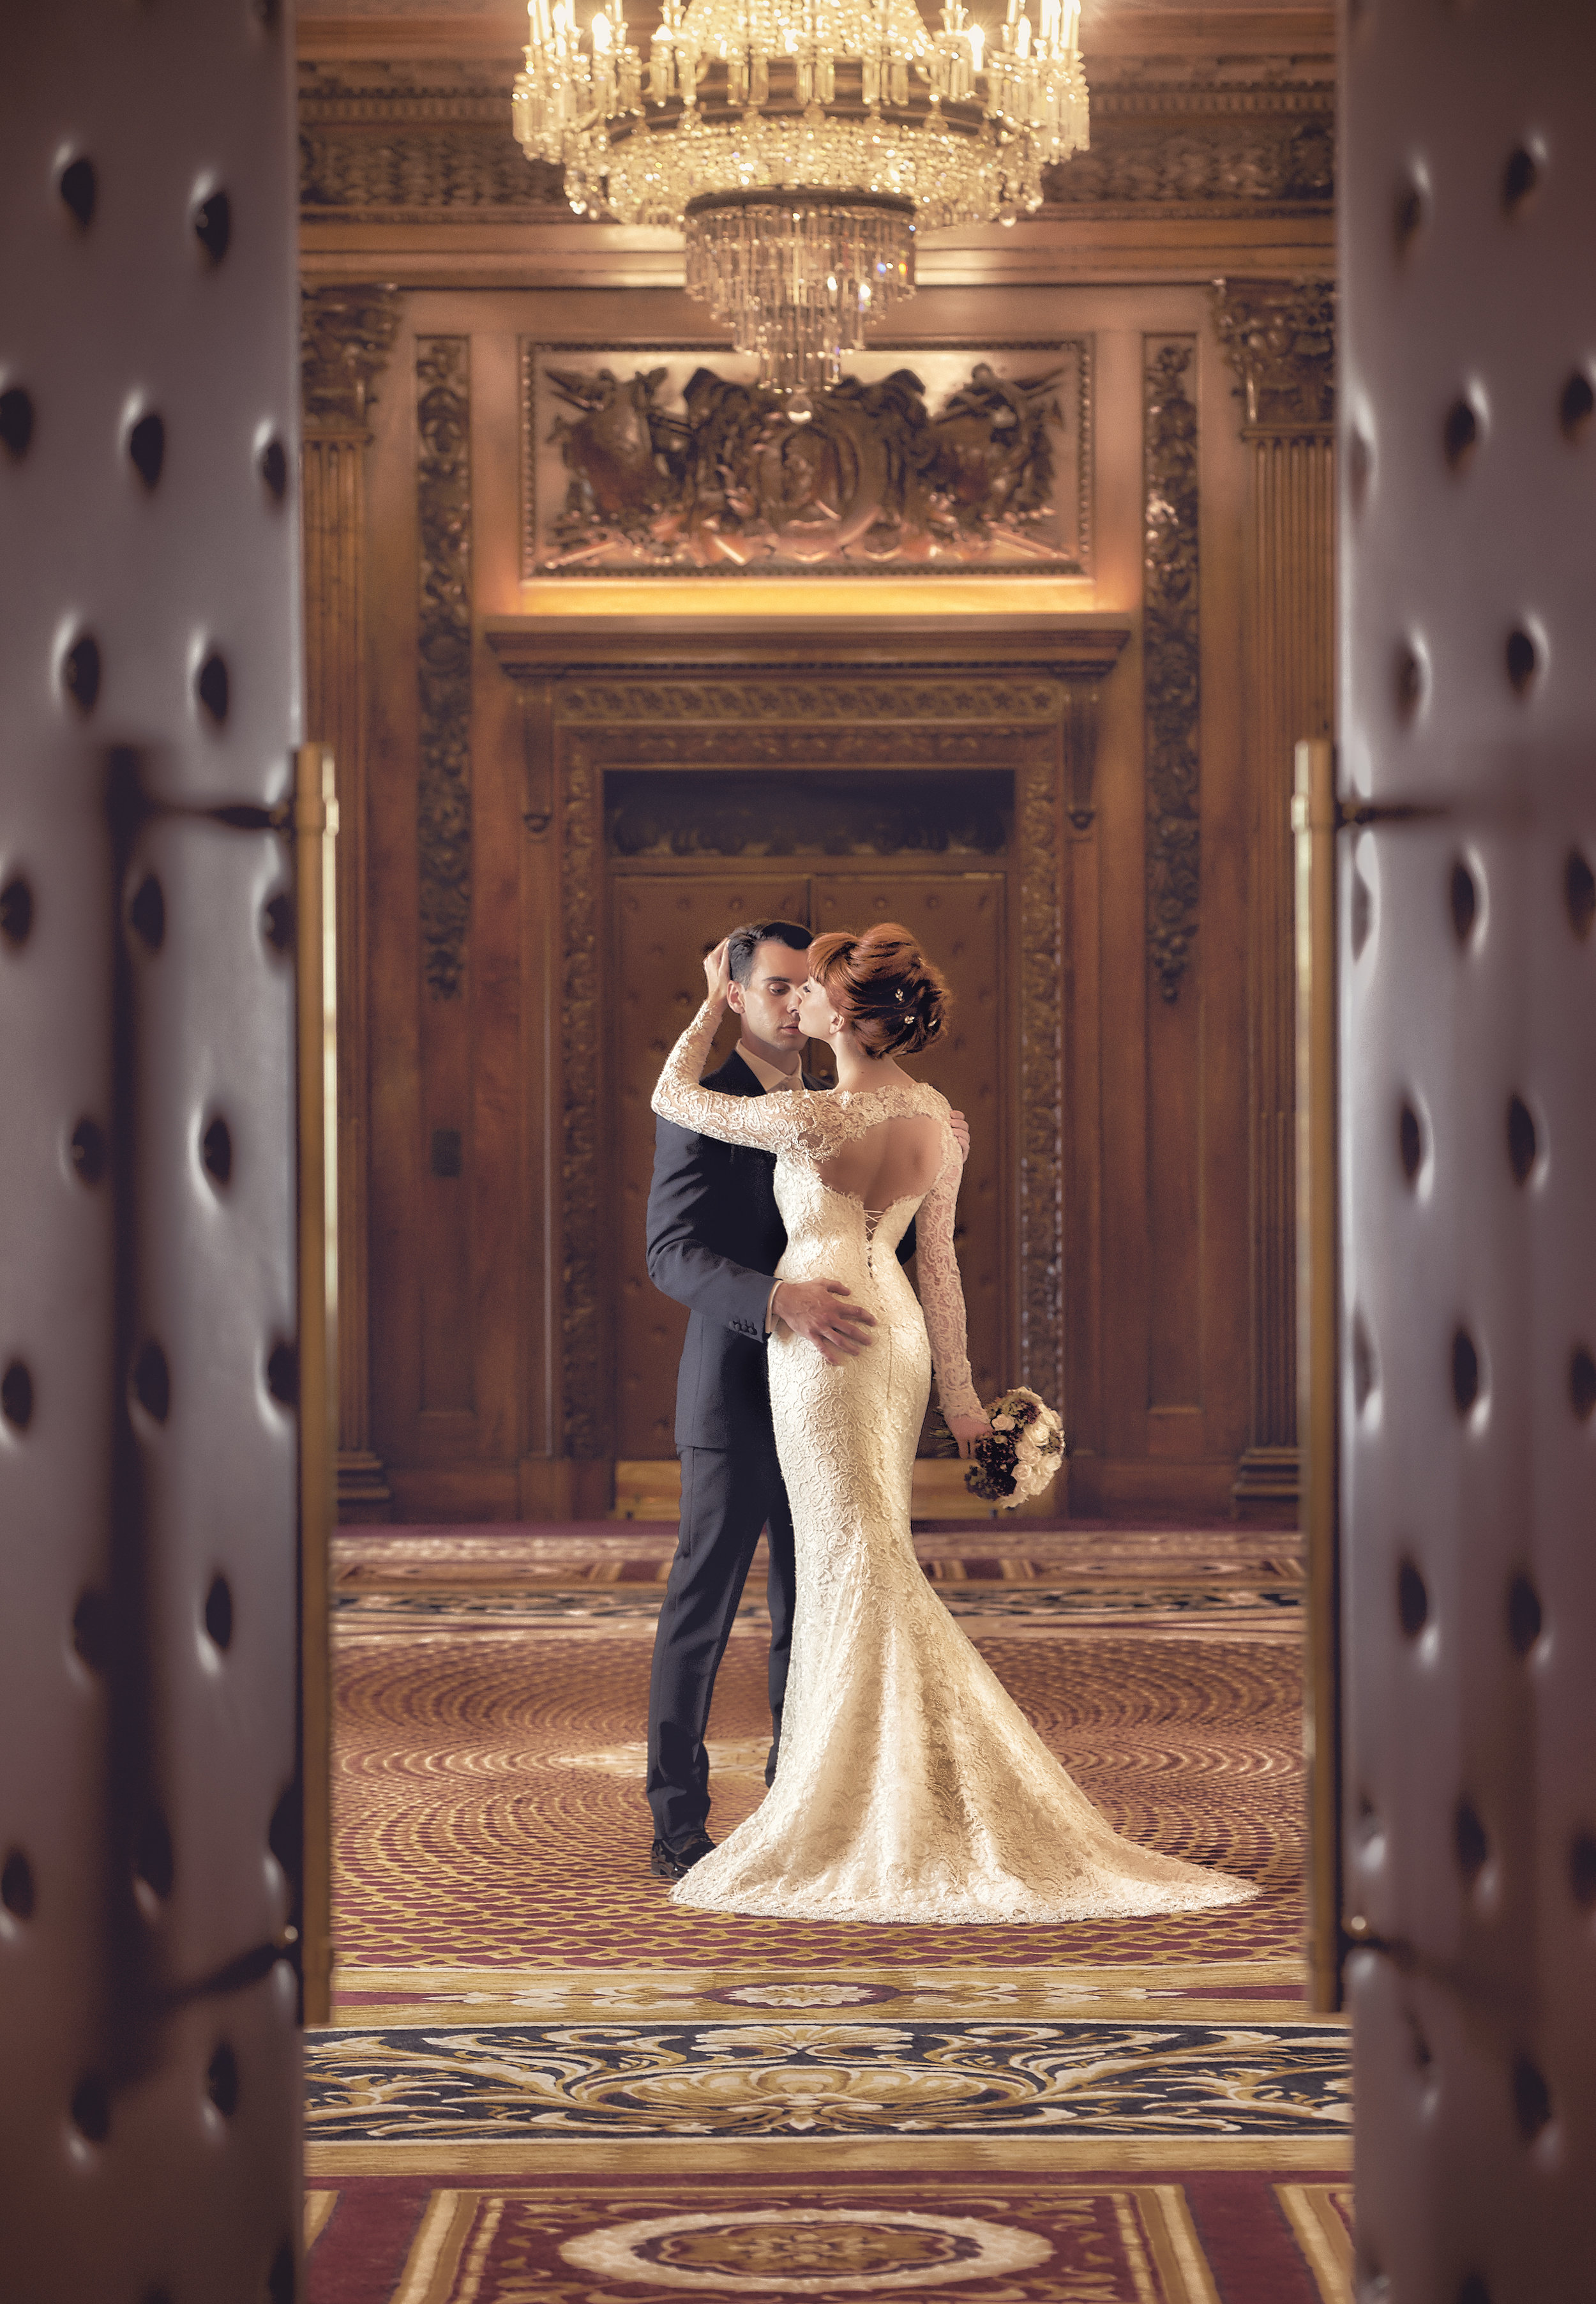 JANUARY Commissioned by Four Seasons Hotels and shot at Ten Trinity Square, featuring dress by Suzie Turner Couture.jpg